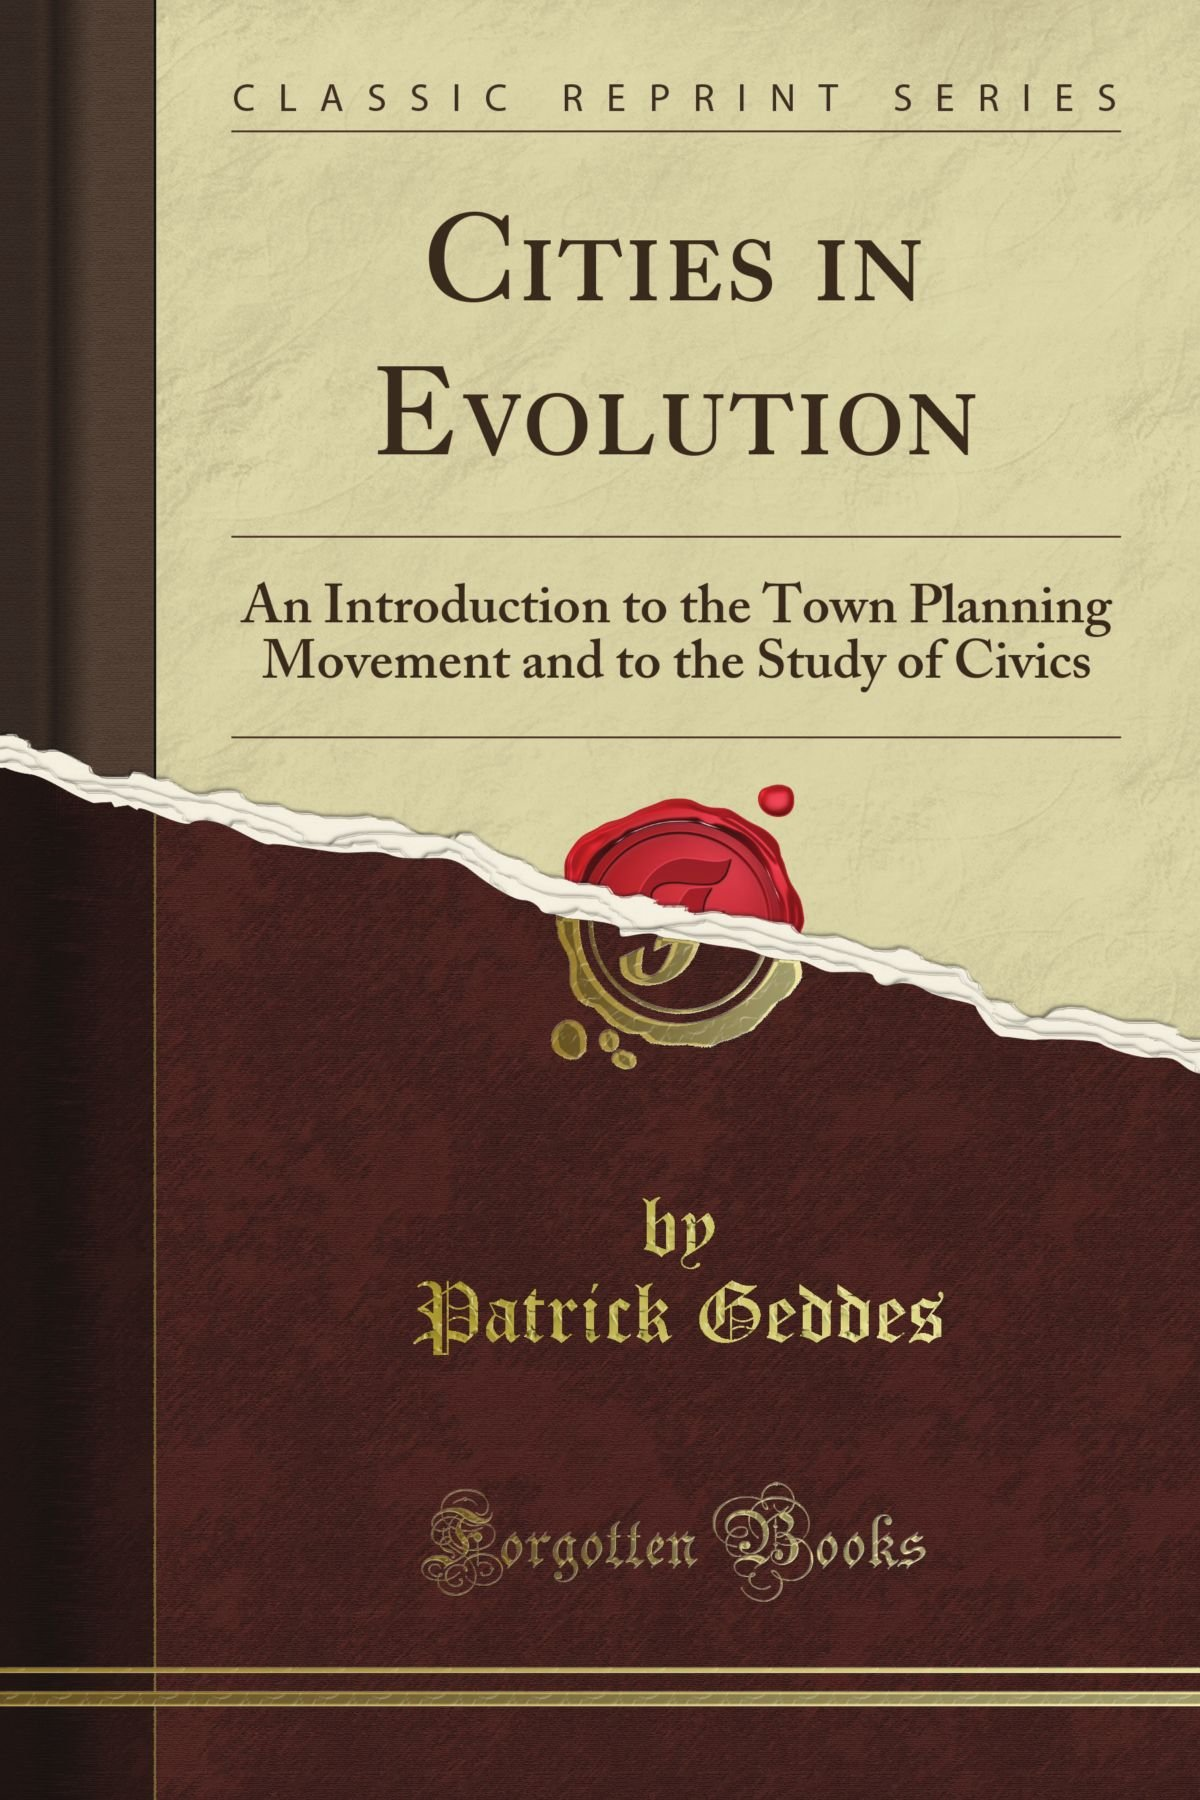 Cities in Evolution: An Introduction to the Town Planning Movement and to the Study of Civics (Classic Reprint) ebook